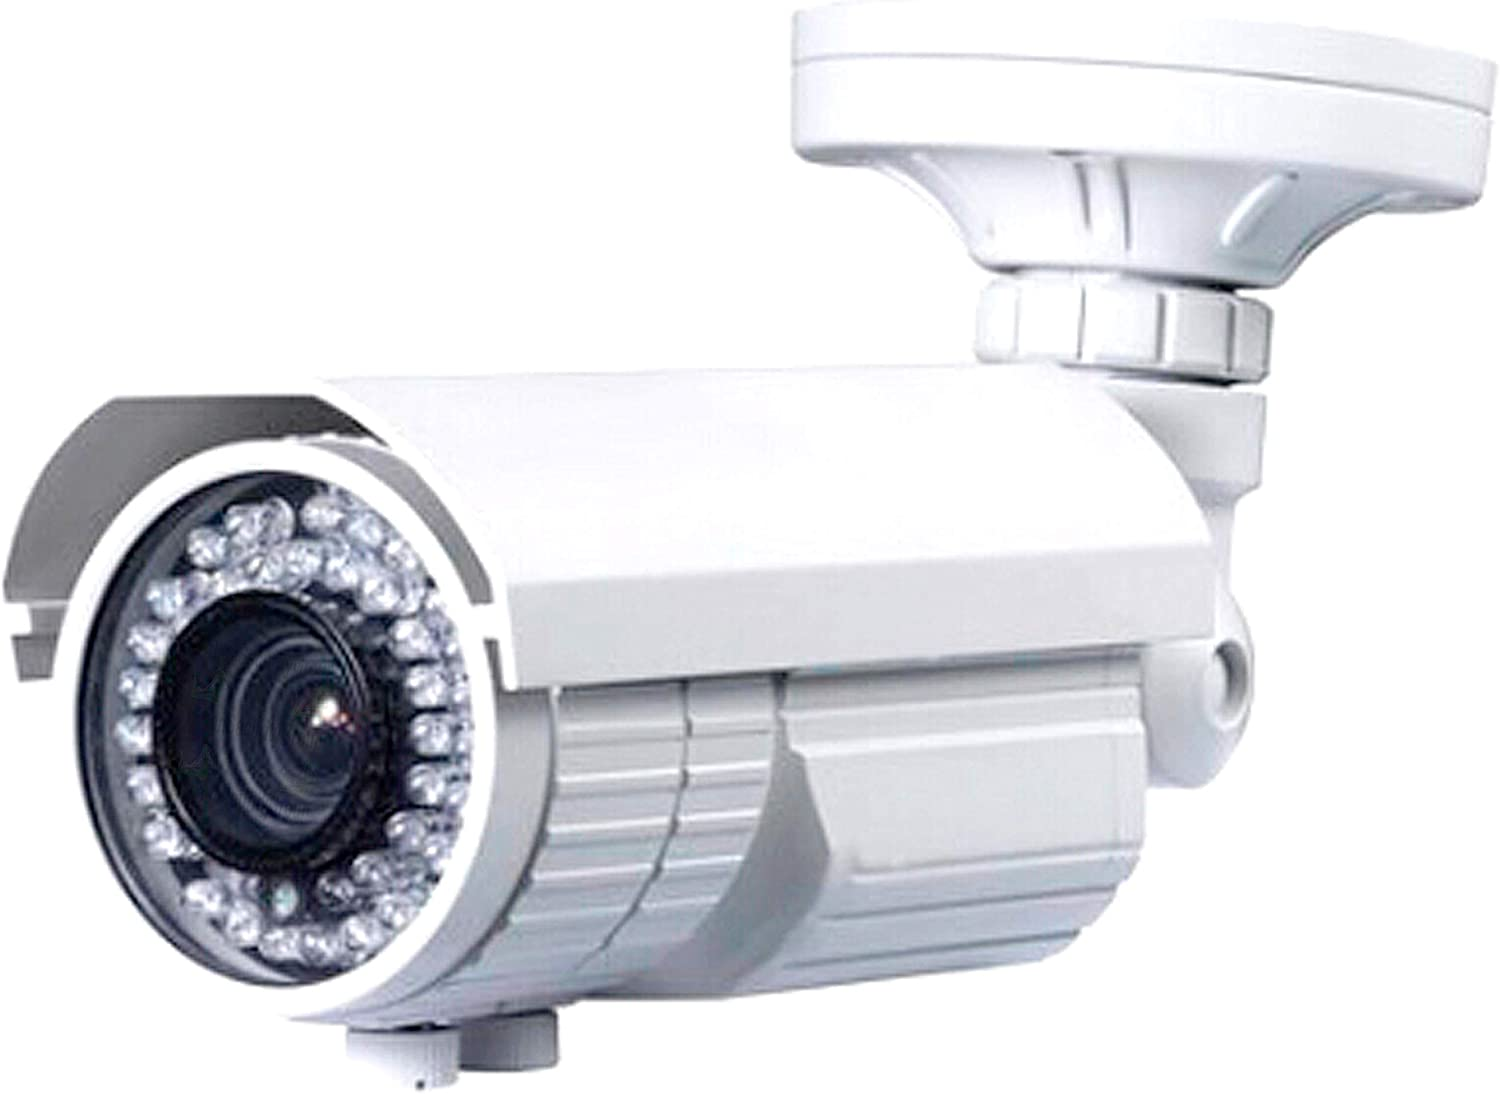 Urban Security Group 5MP IP Bullet Year-end annual account 2.8-12m Camera: Genuine Free Shipping PoE